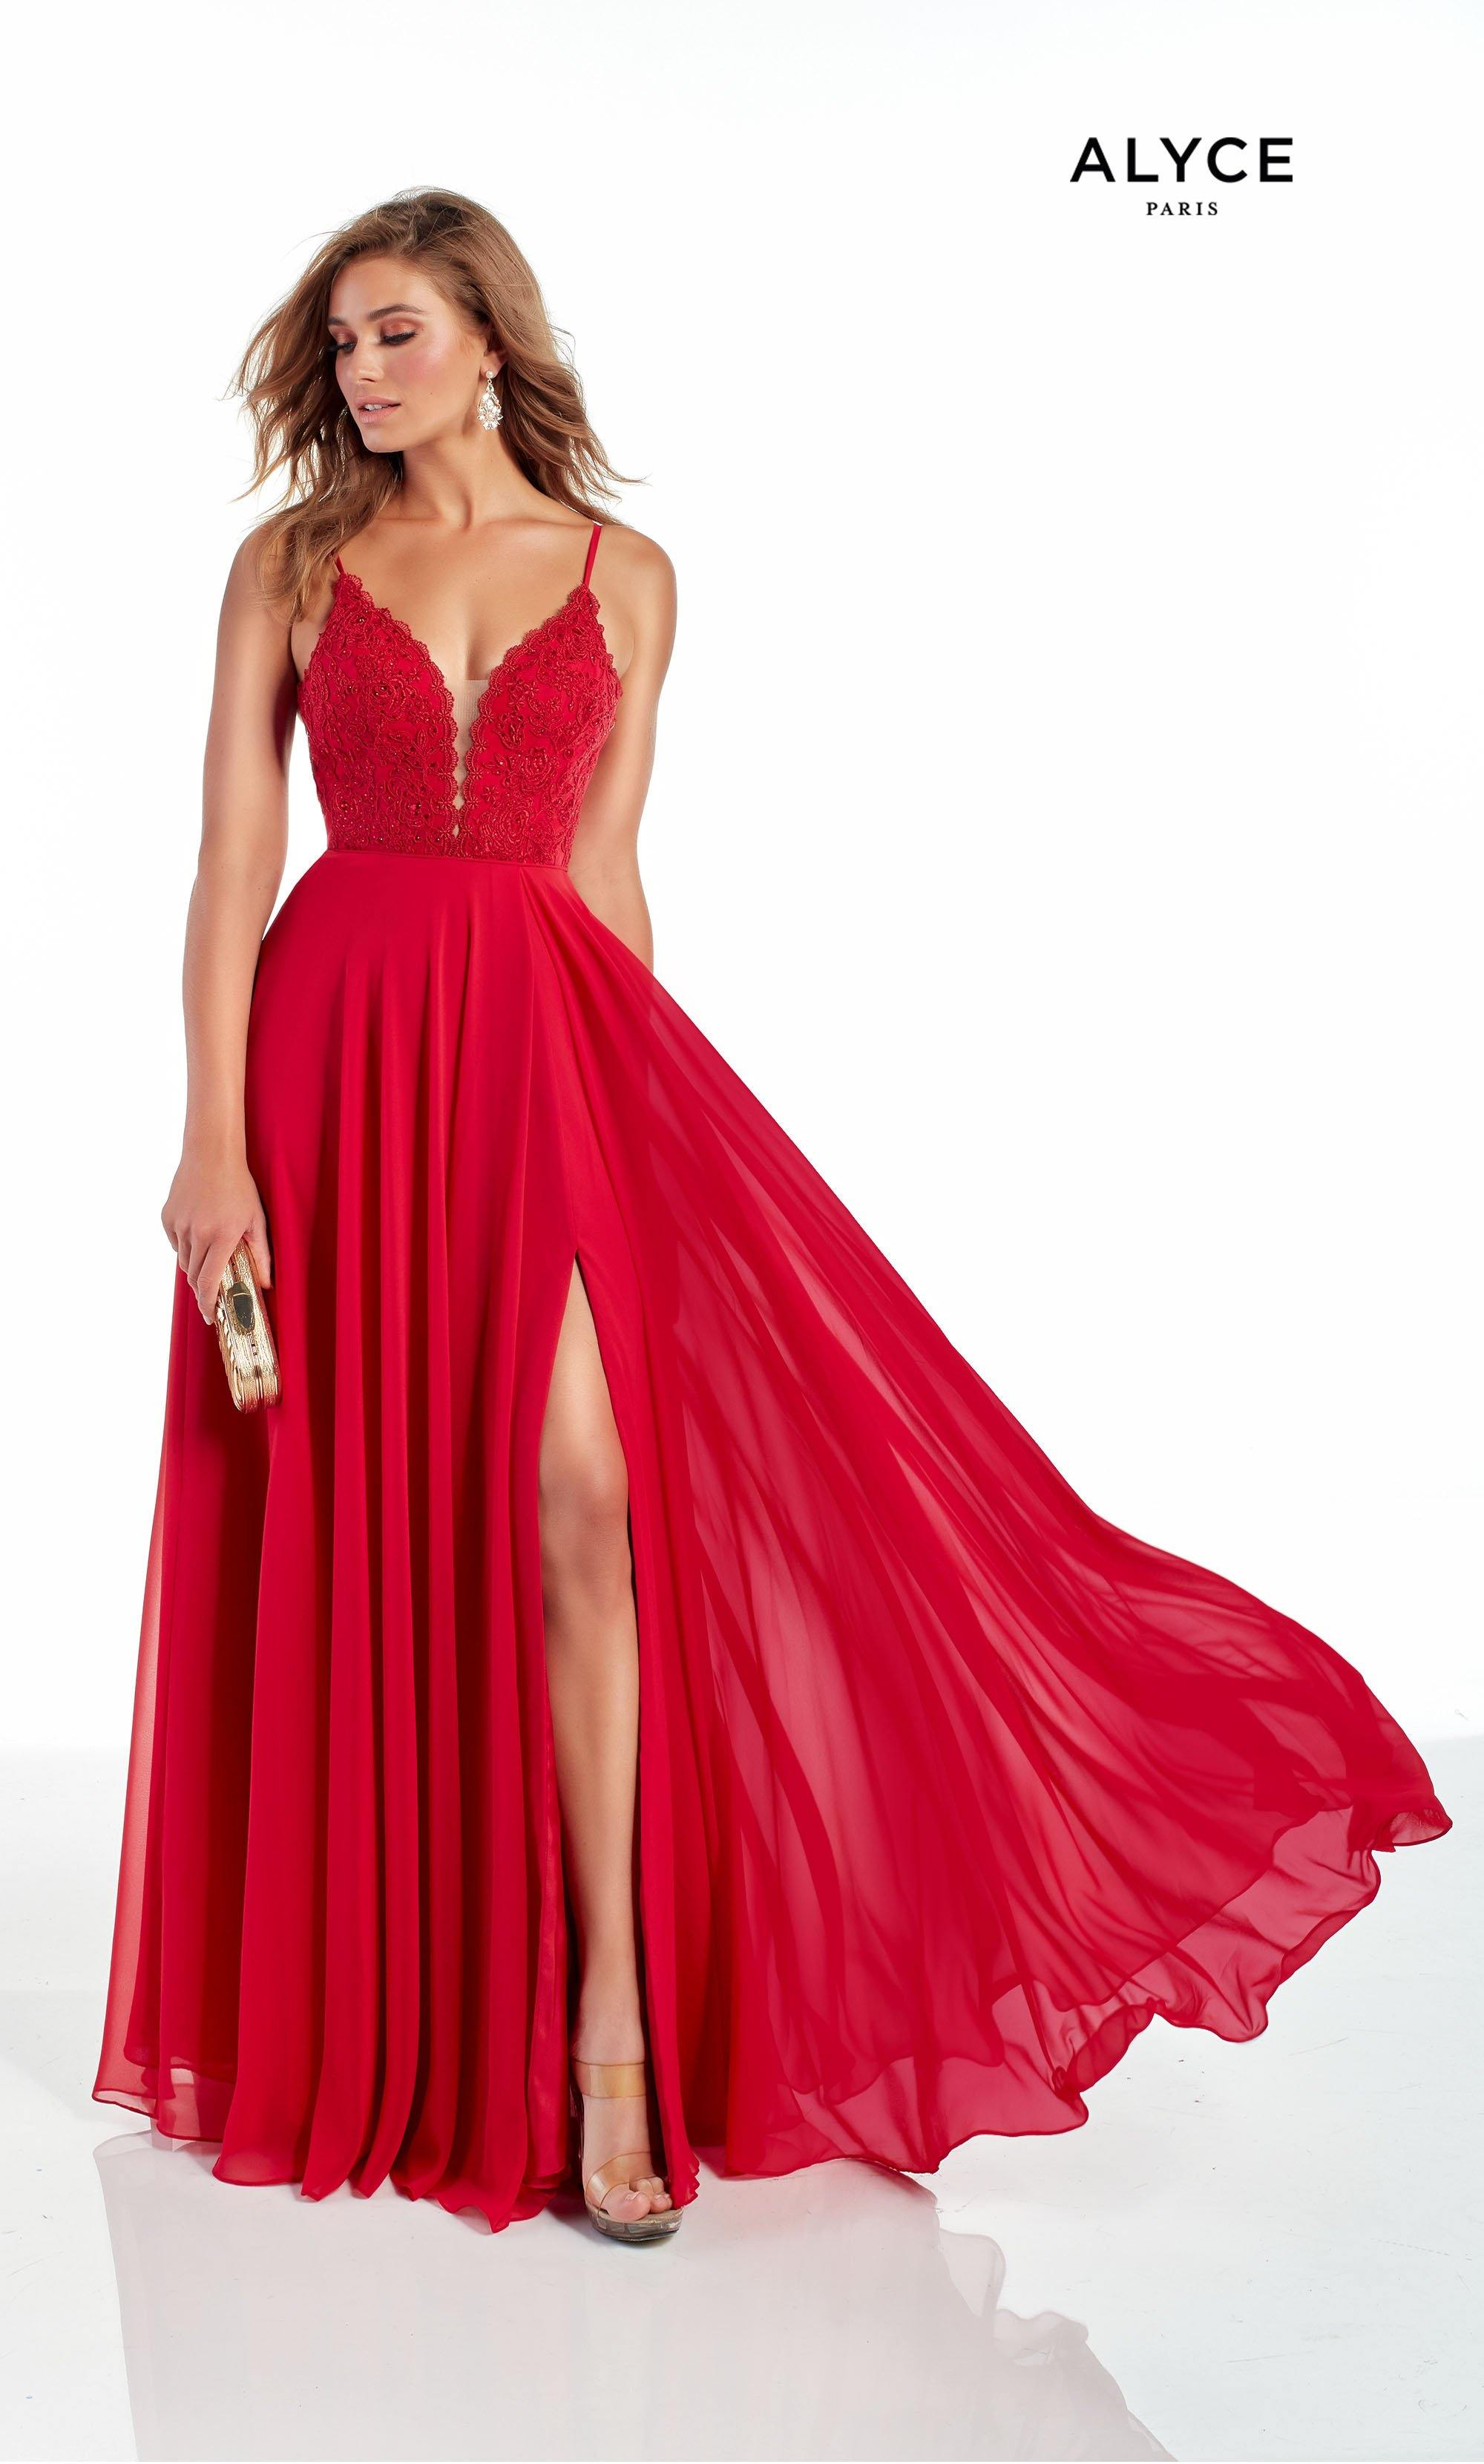 Red flowy chiffon bridesmaid dress with a plunging neckline and front slit